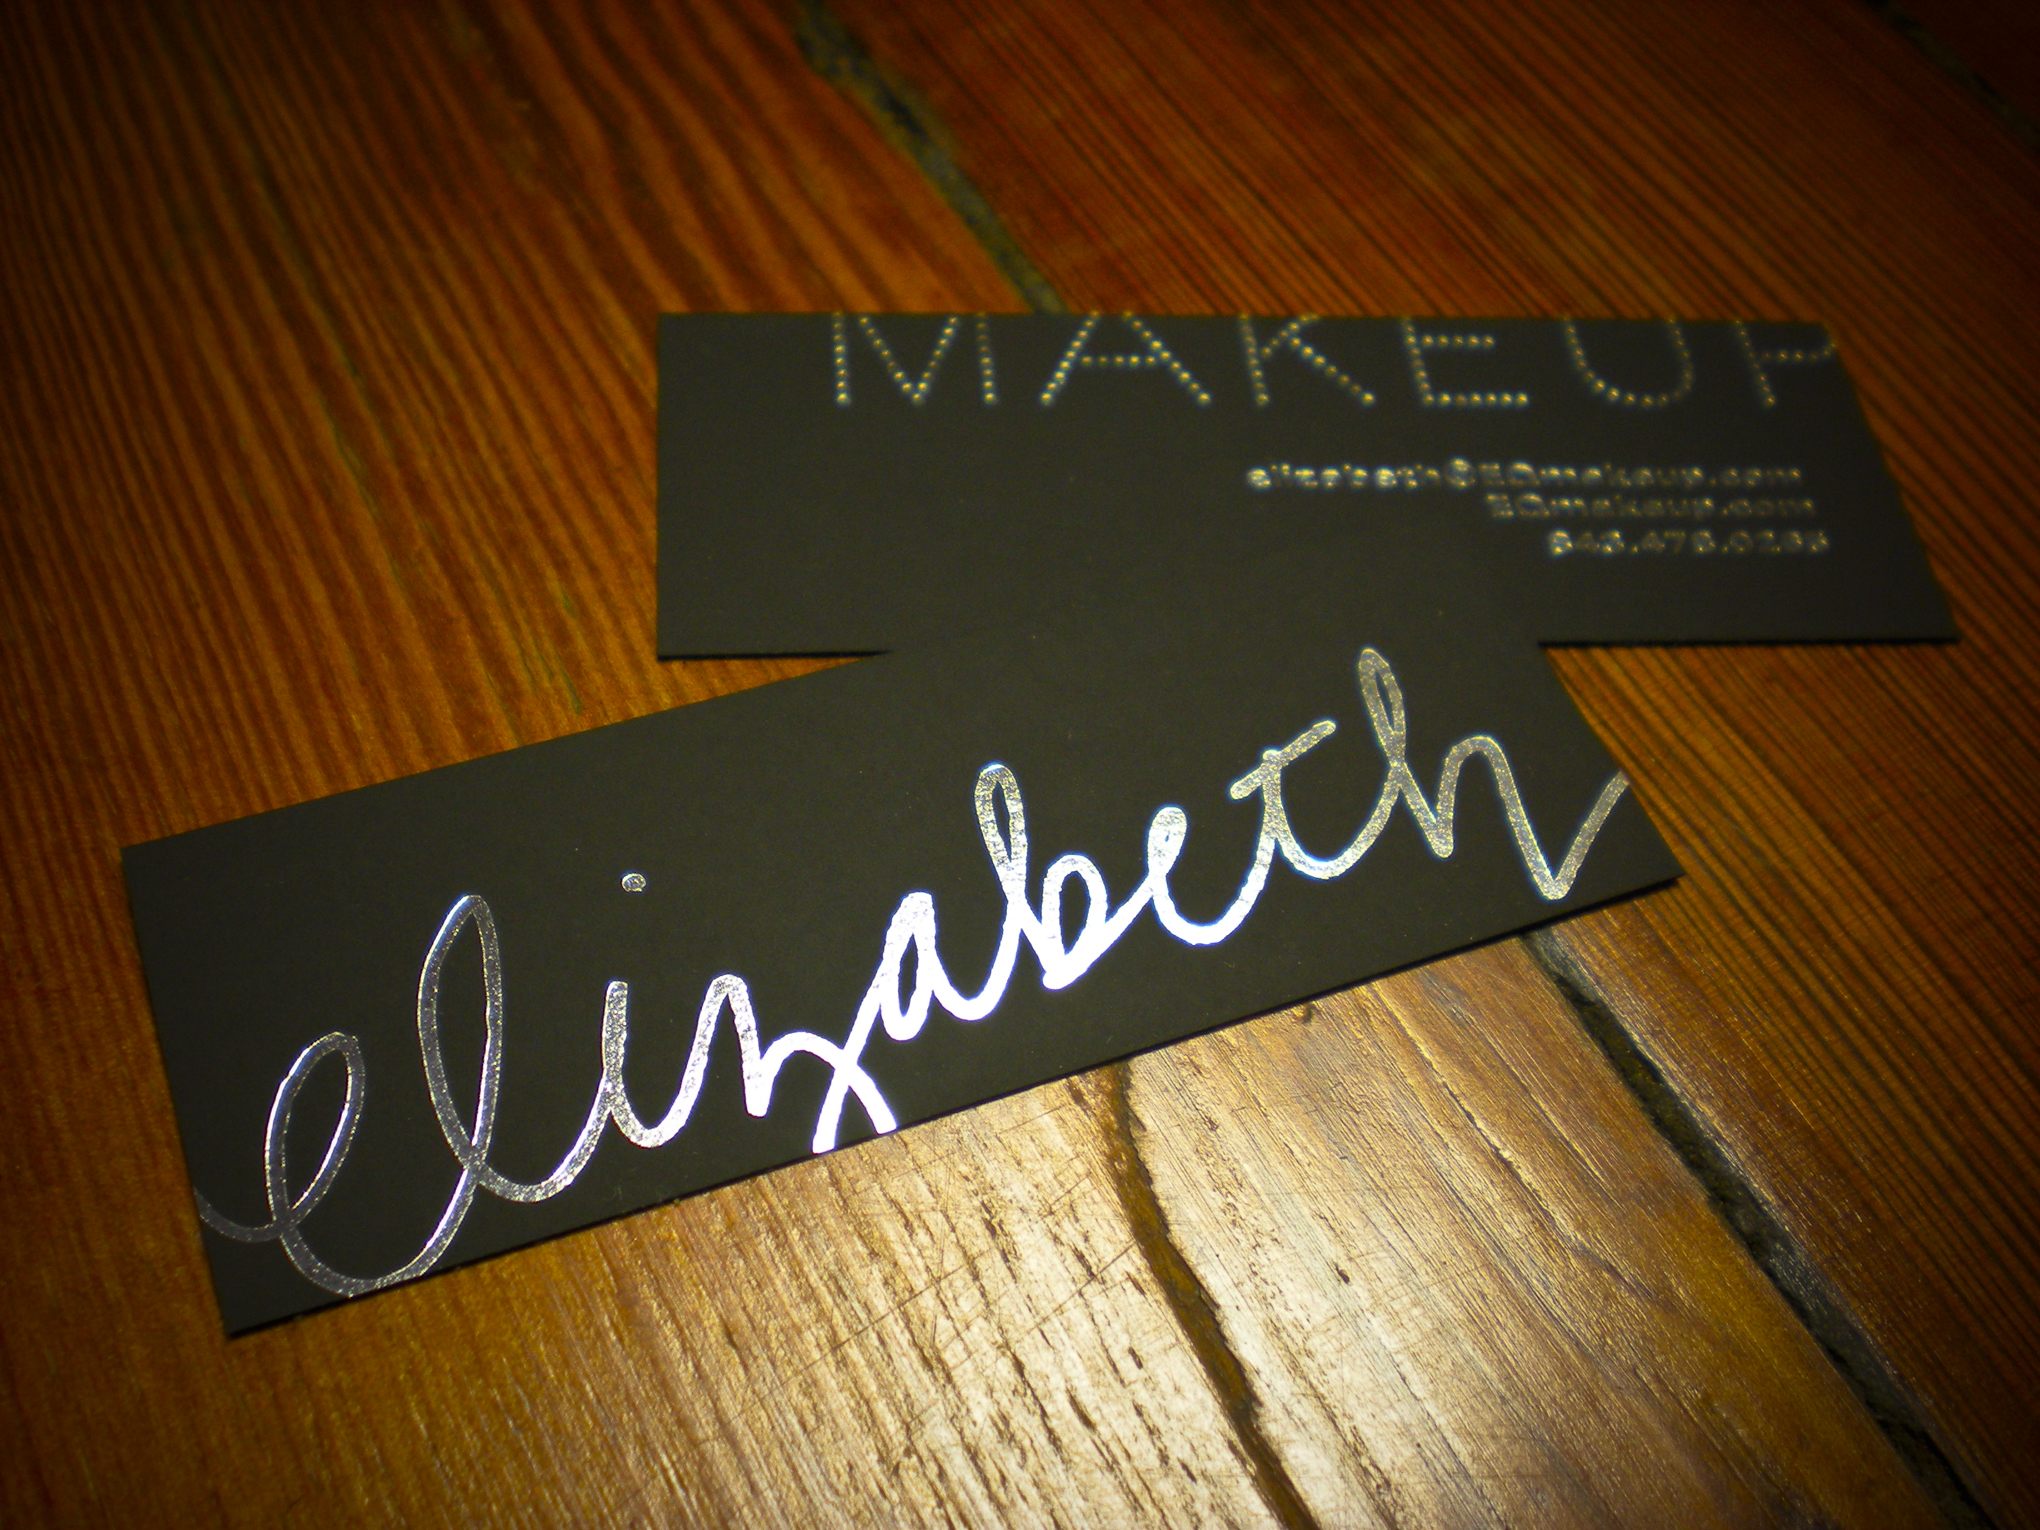 Makeup artist business cards akbaeenw makeup artist business cards reheart Gallery